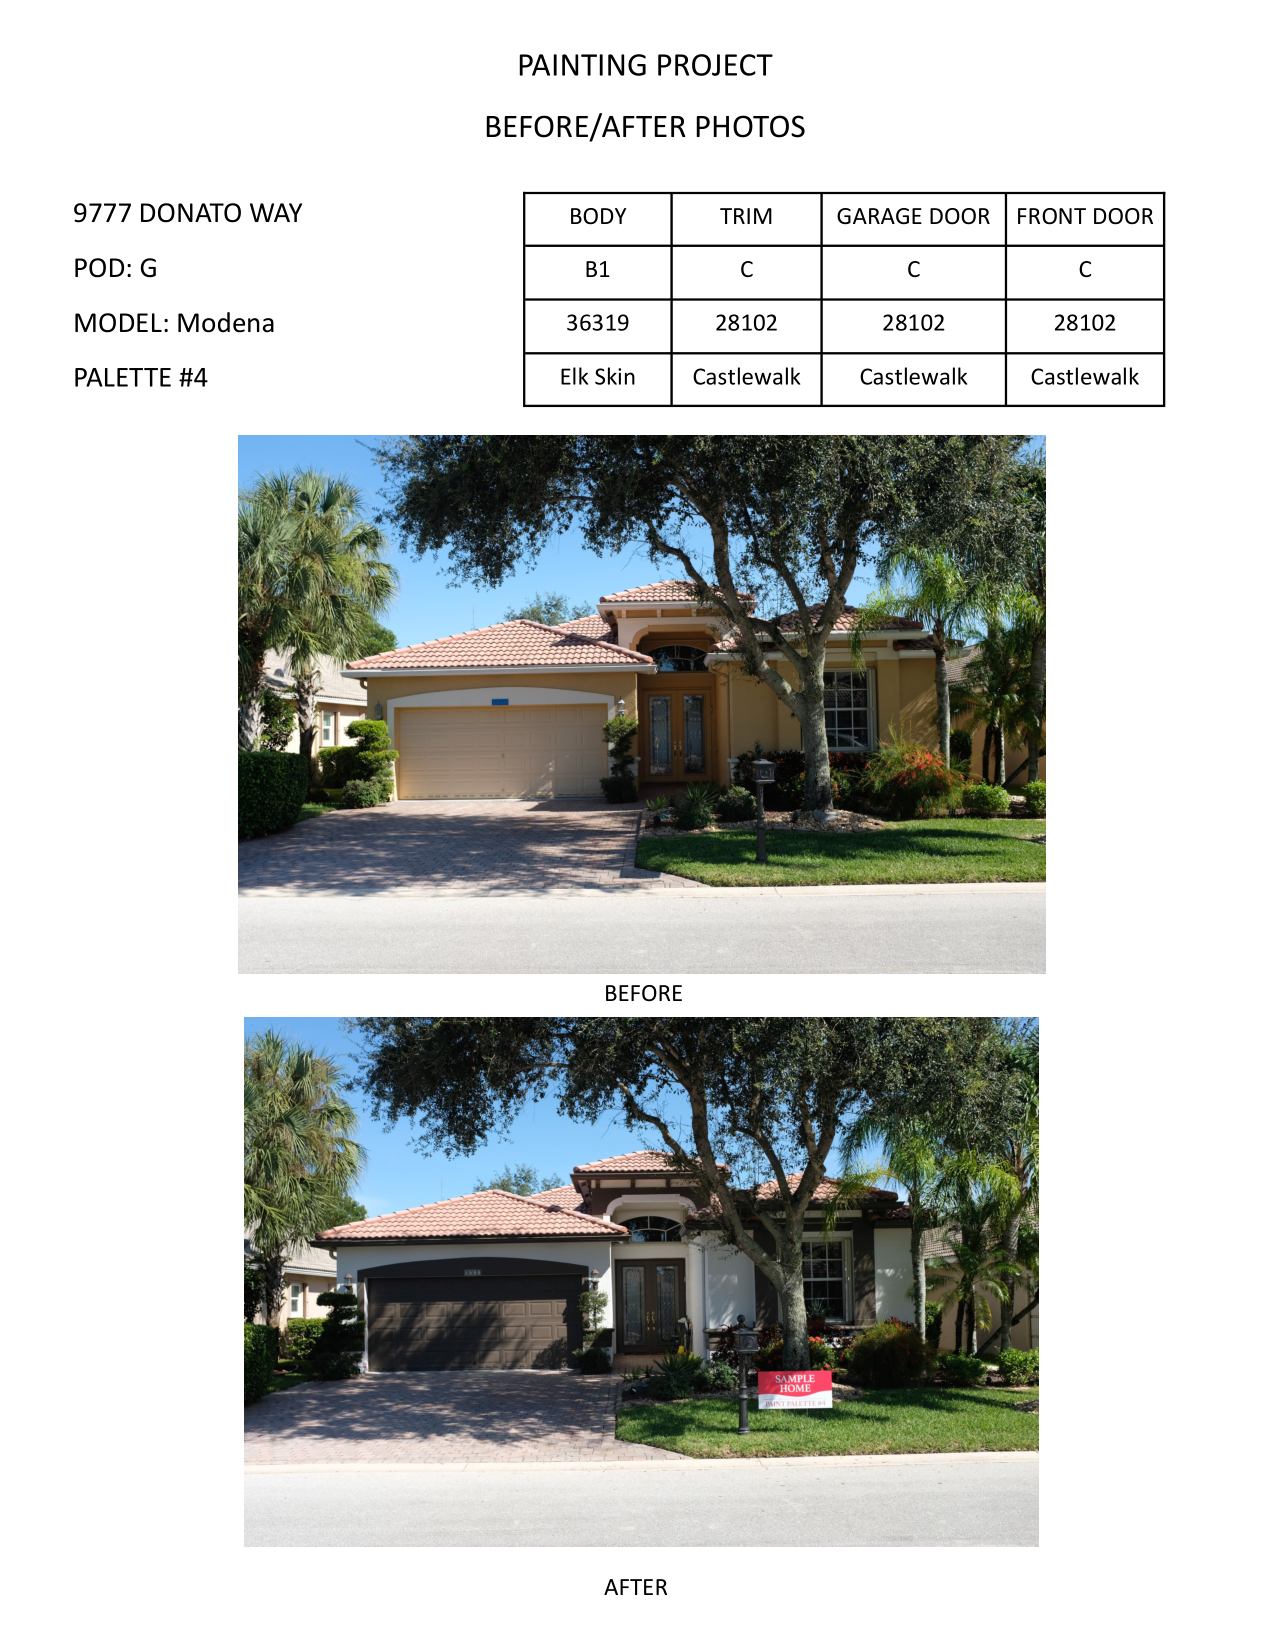 b4aftersample homes pictures-5.png